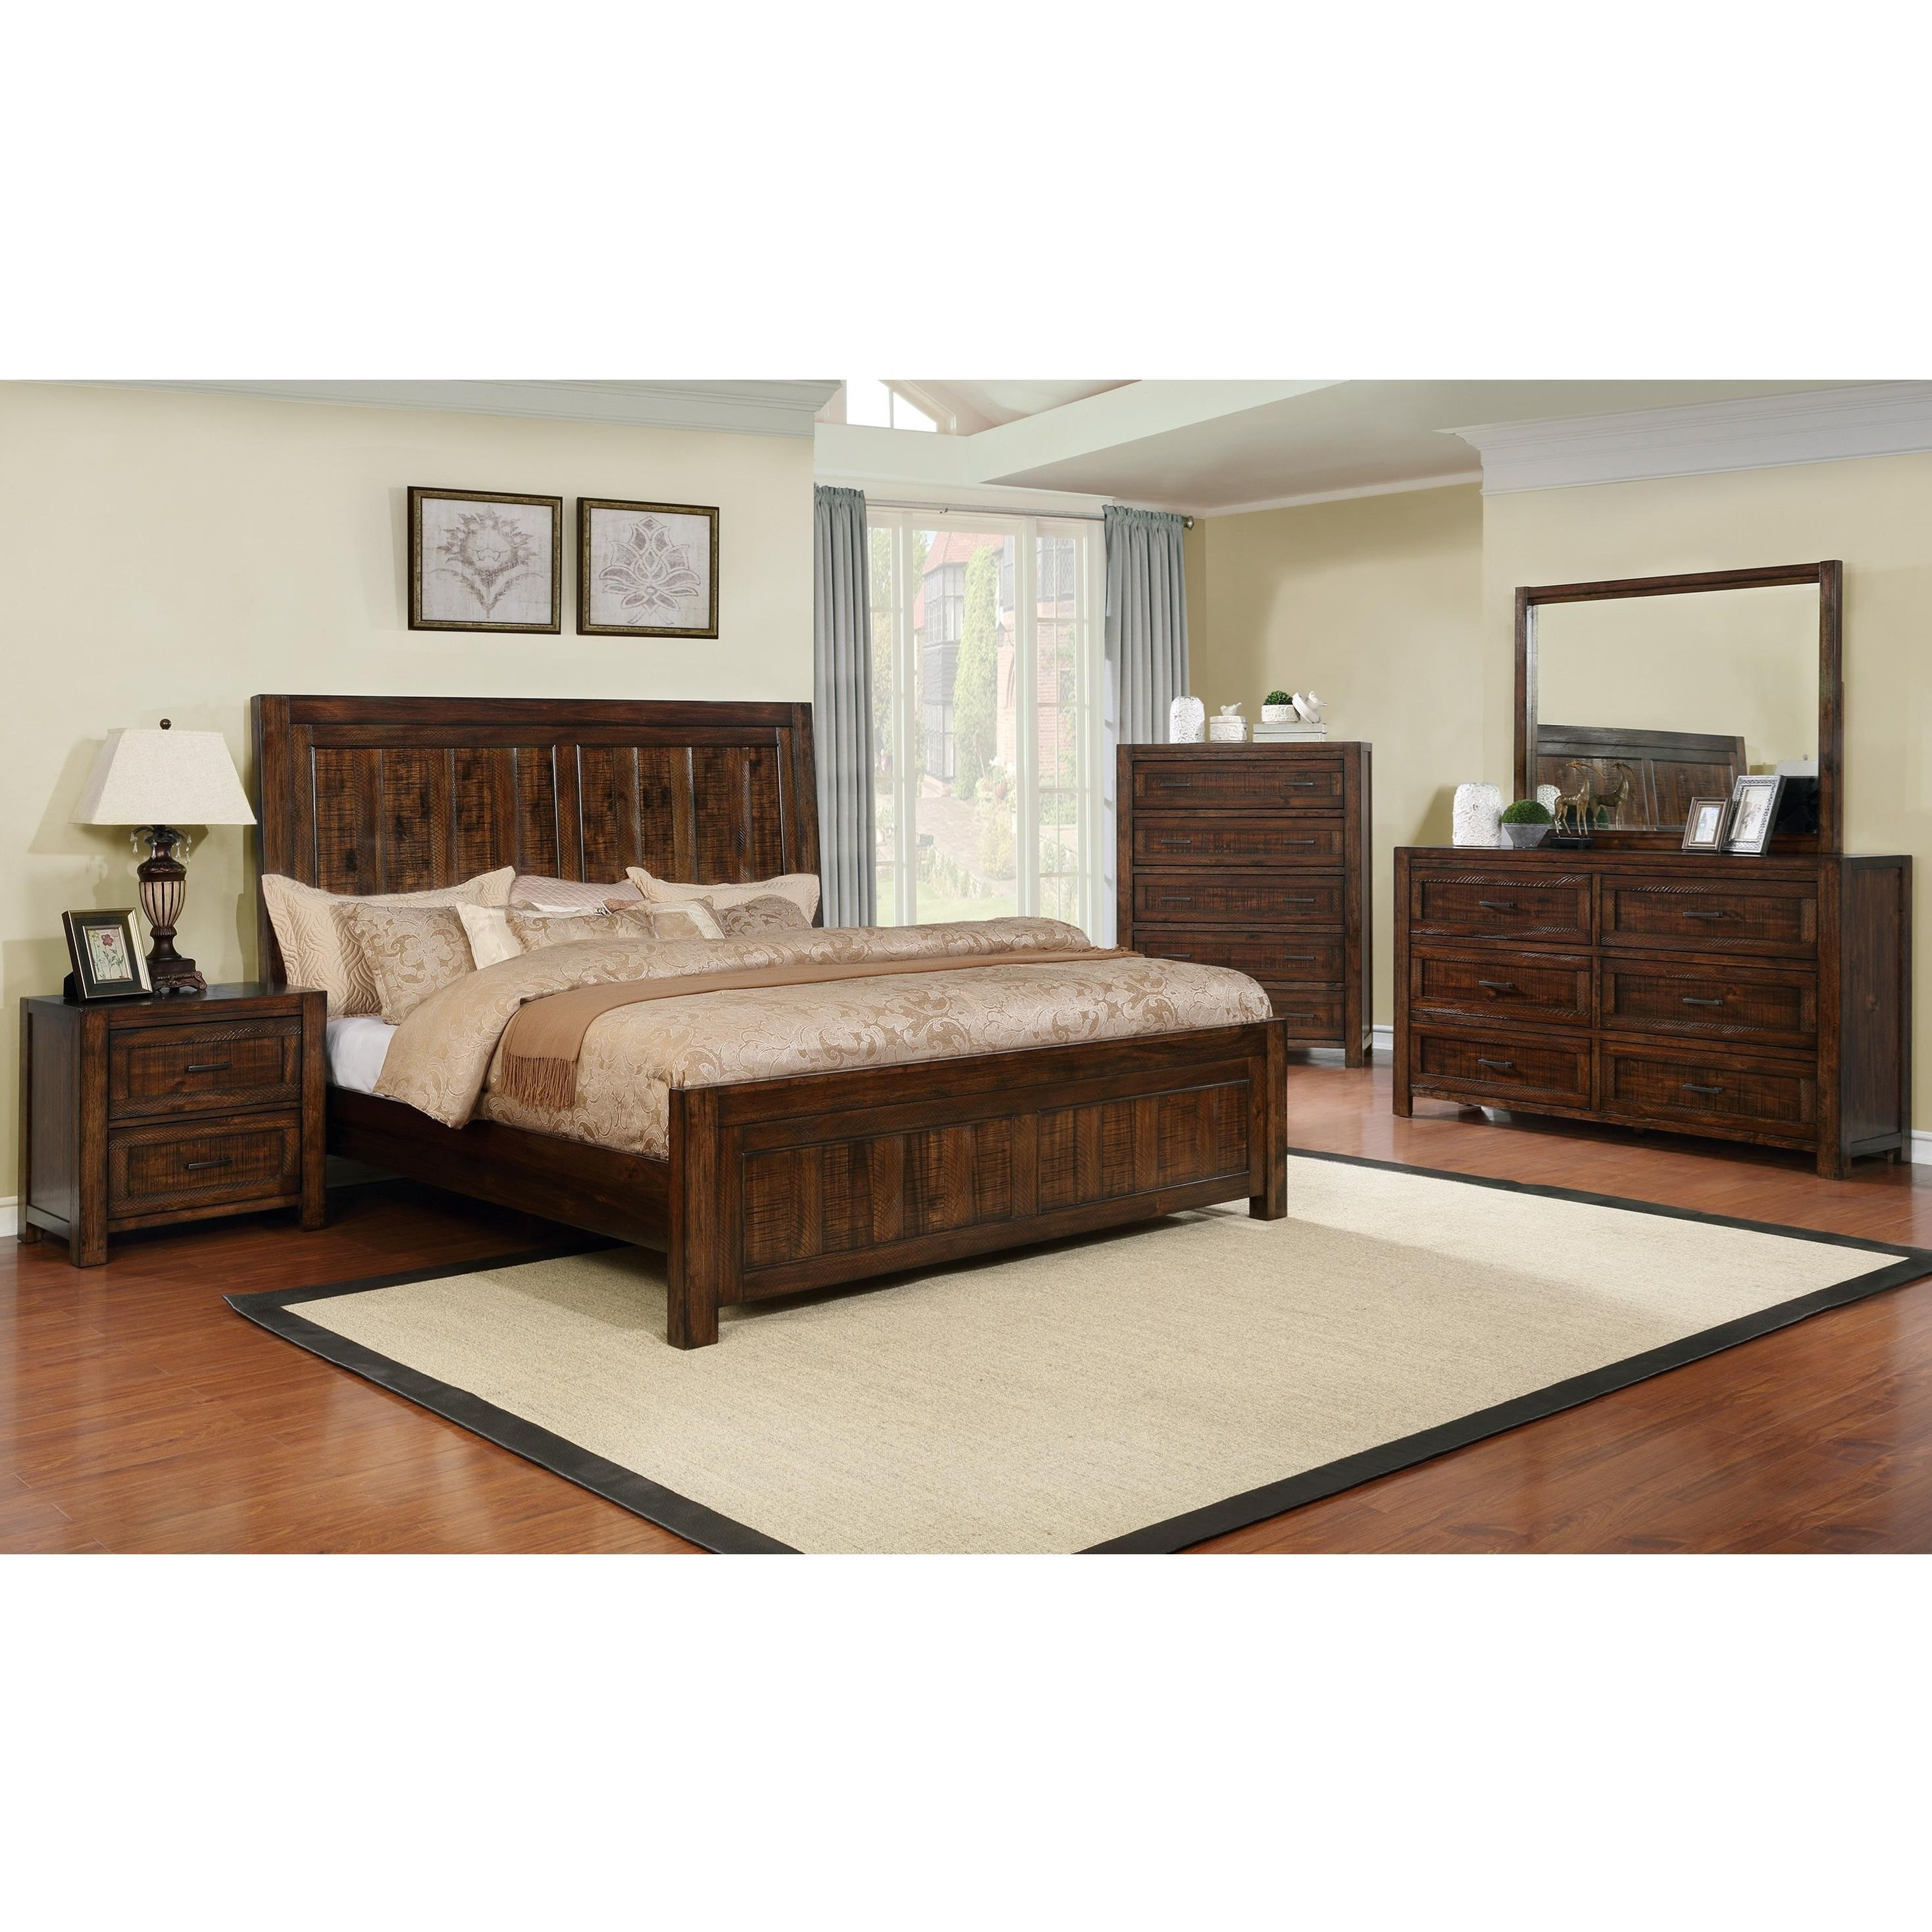 Crown mark christian king bedroom group dunk bright for Bedroom furniture groups